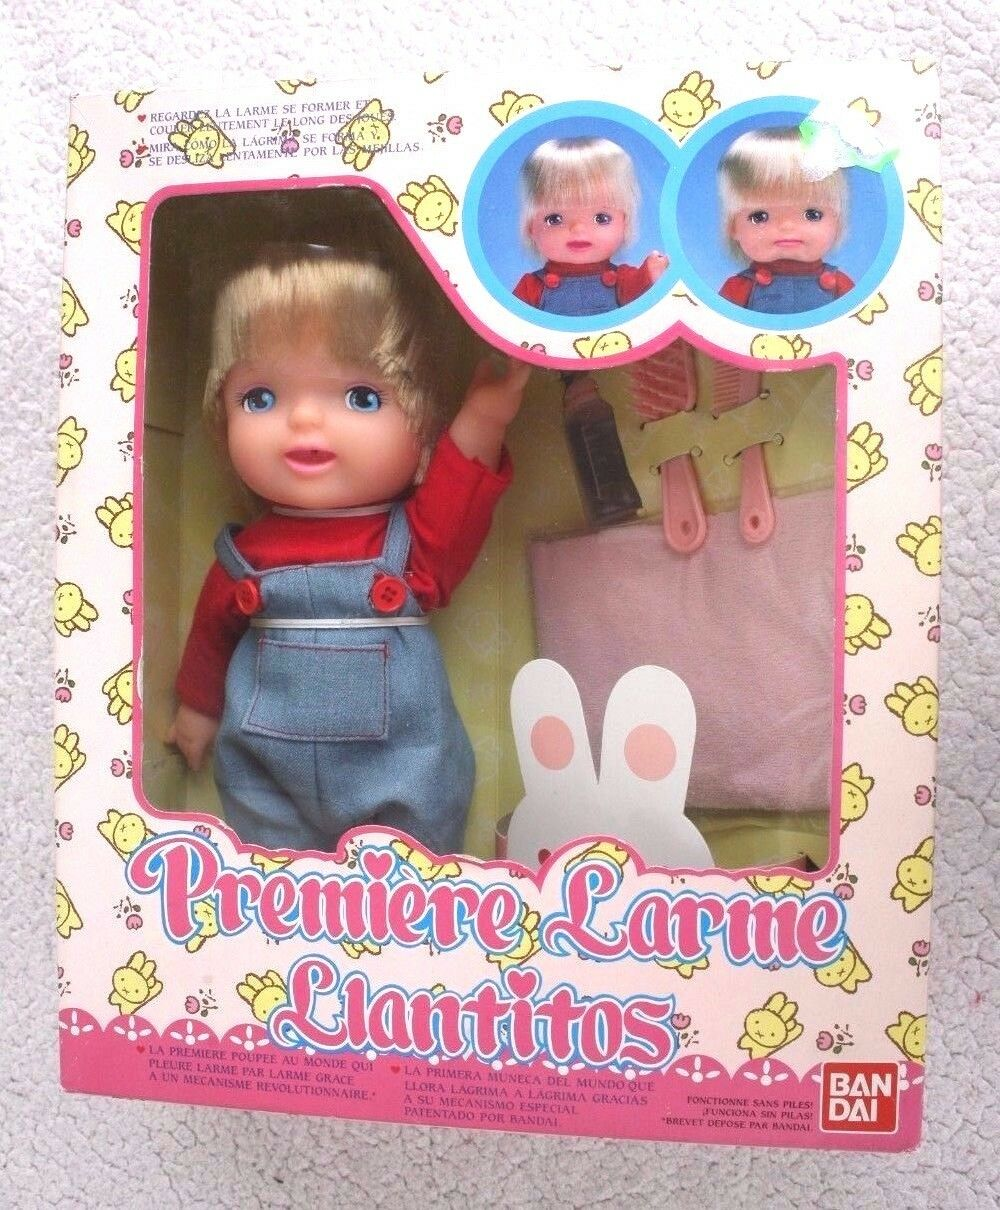 PREMIERE LARME DOLL (LLANTITOS). FIRST REAL CRYING IN THE WORLD  BANDAI 90´S, BN